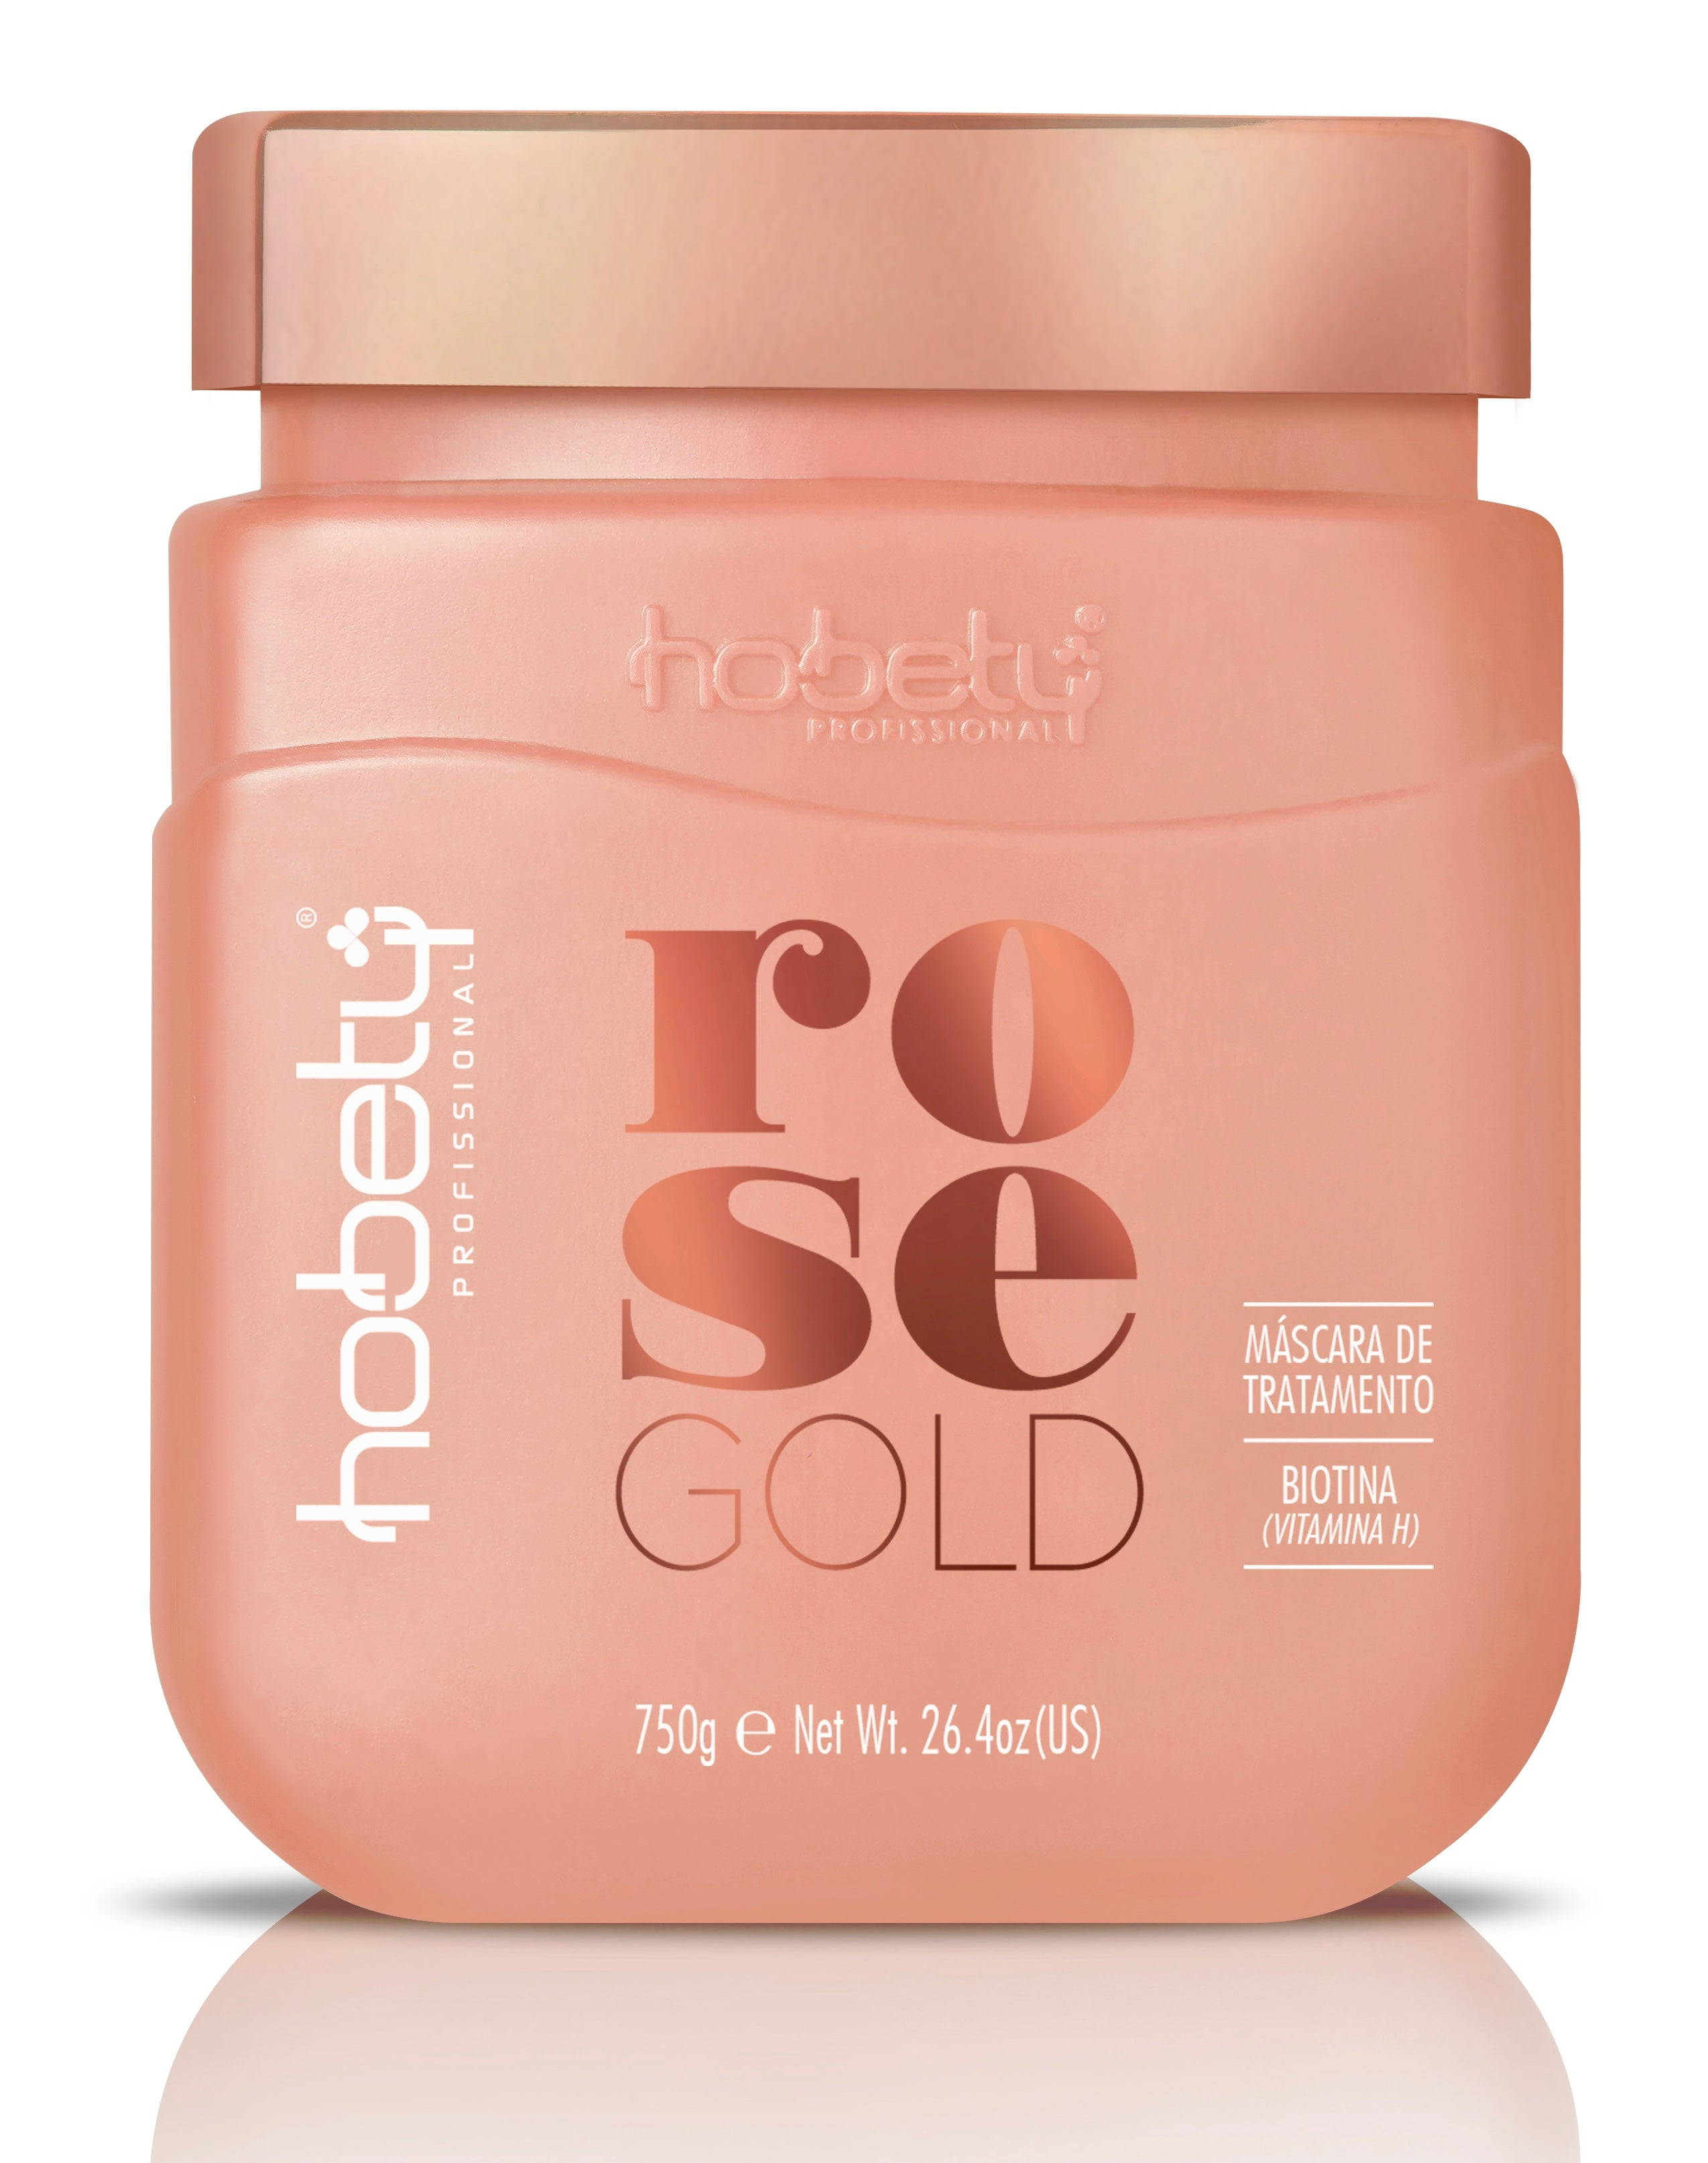 Rose Gold Conditioner Mask - 750g / 26.46oz - For brittle hair that needs growth and resistance. WITH BIOTIN.